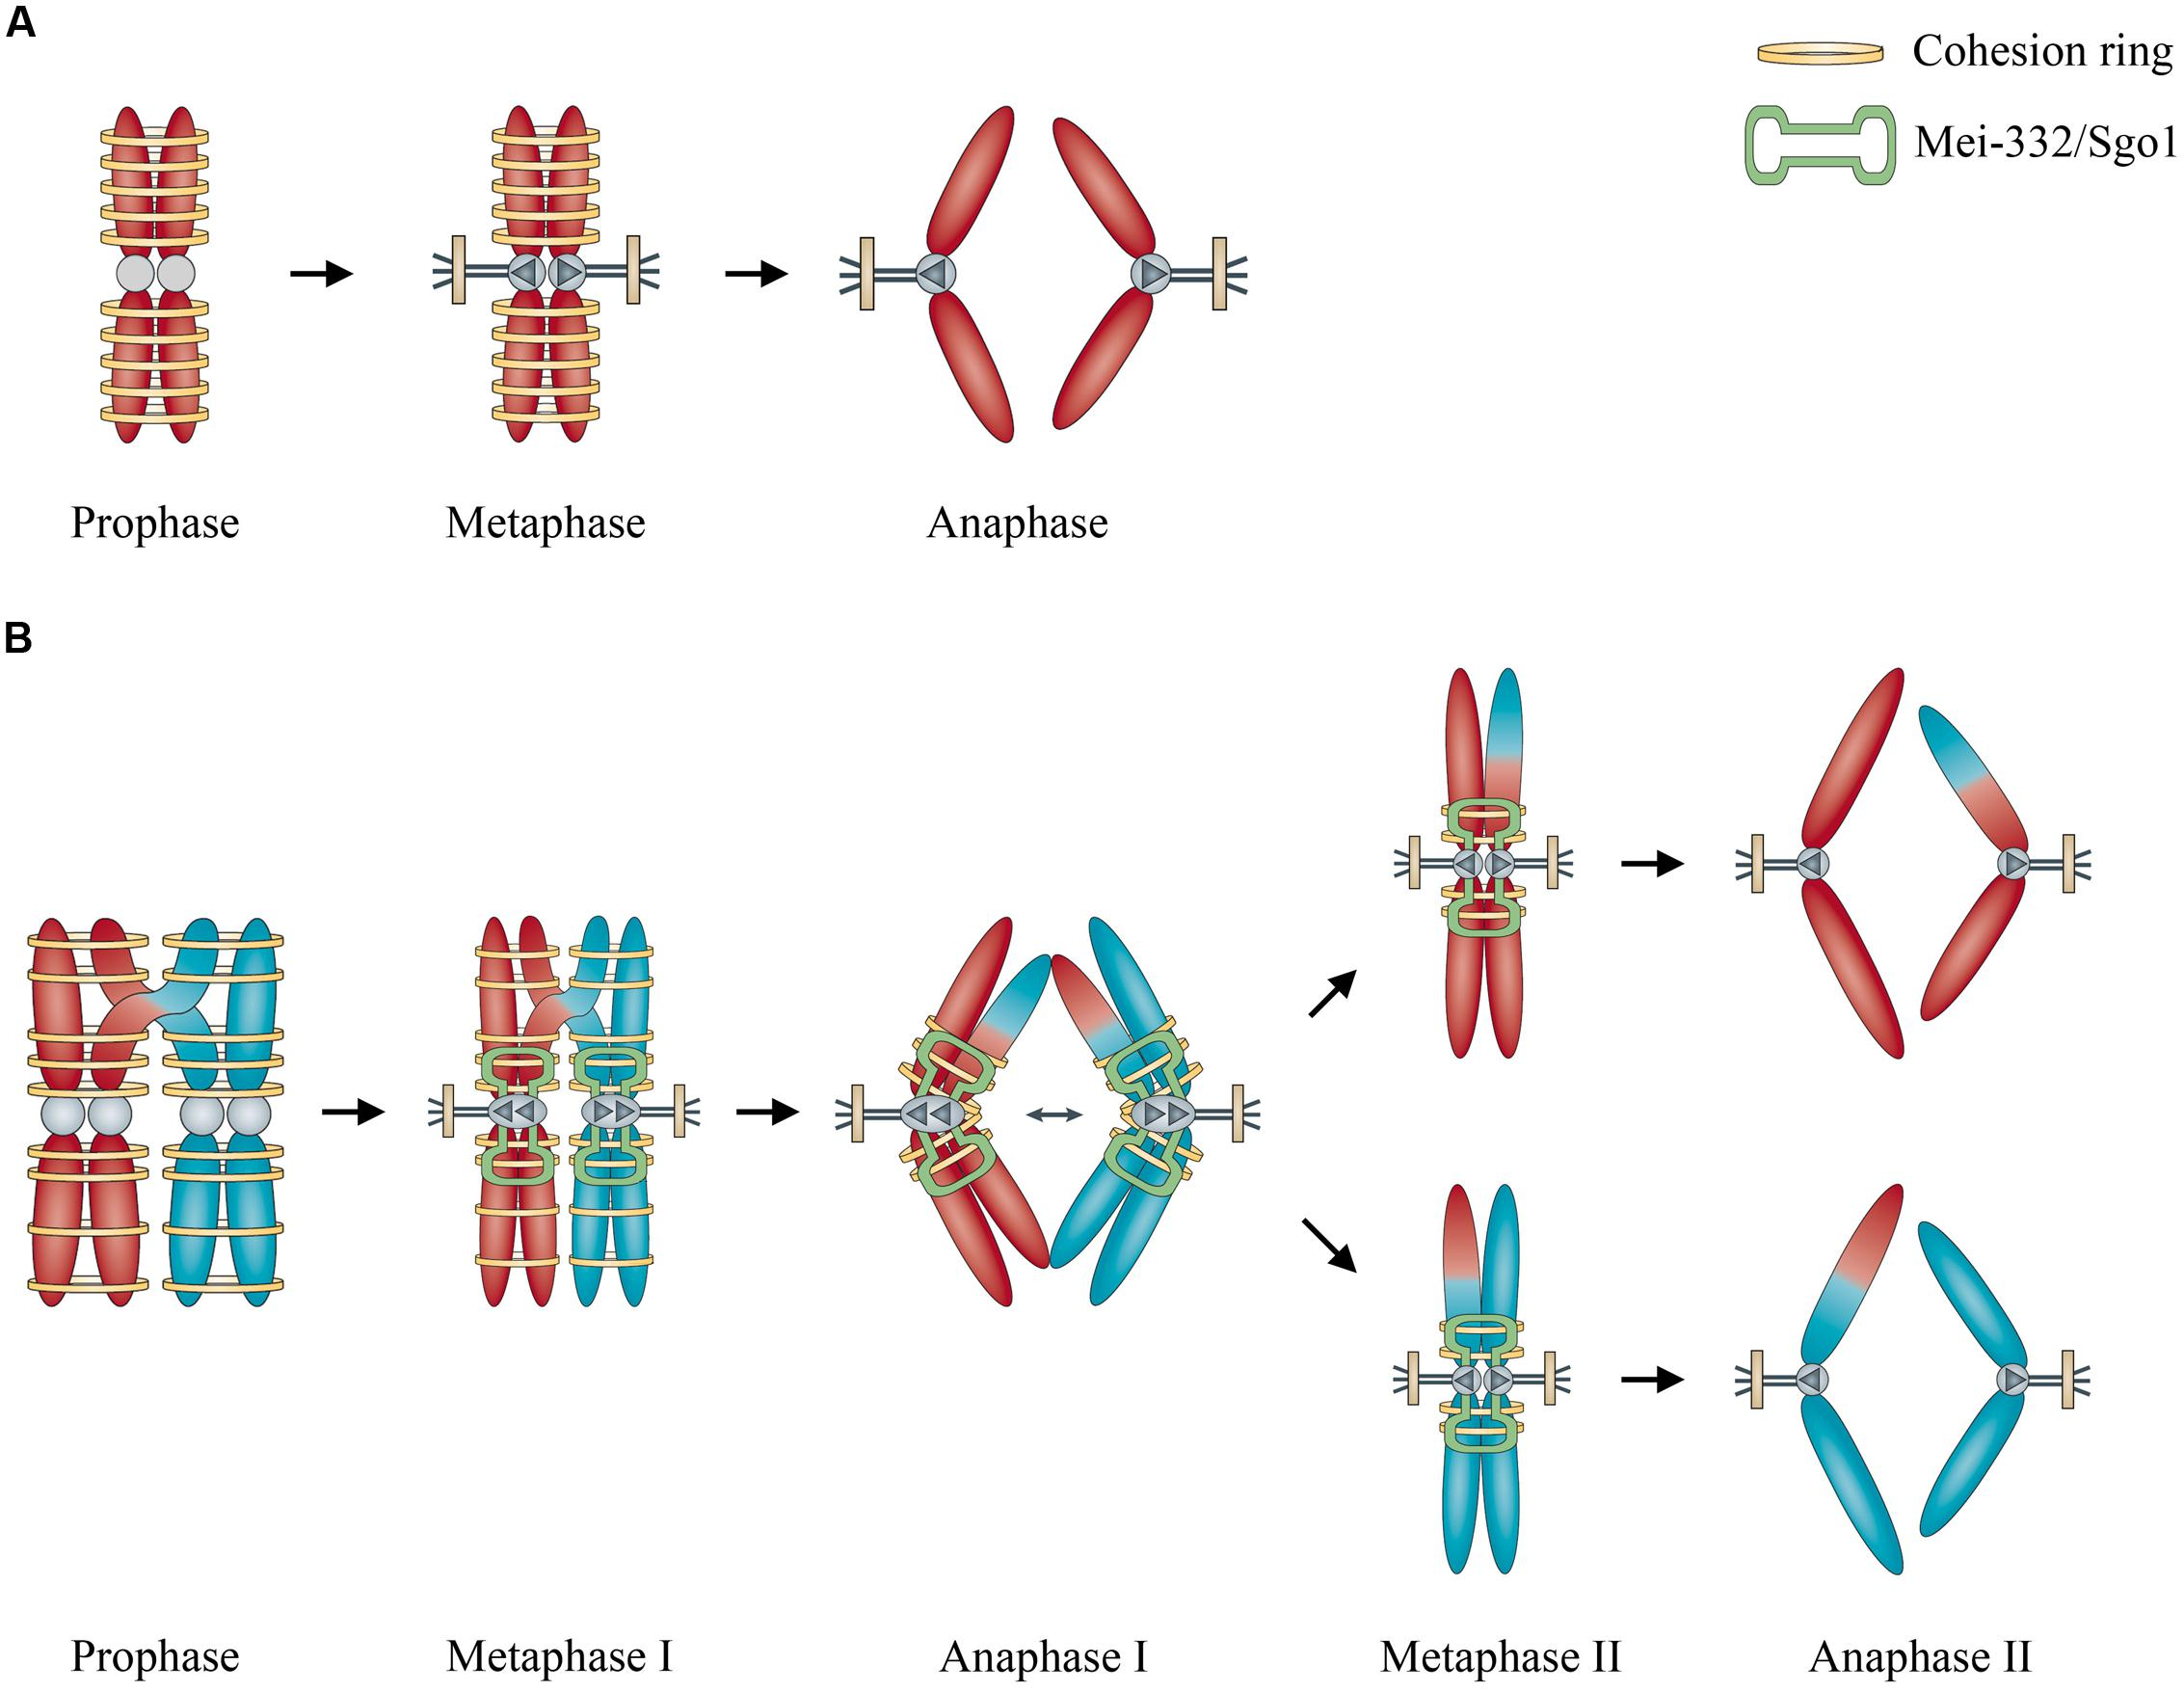 an analysis of the reproduction of the cells by meiosis It's meiosis that gives us the male and female reproductive cells known as the  egg and sperm in meiosis, two cell divisions take place, which.